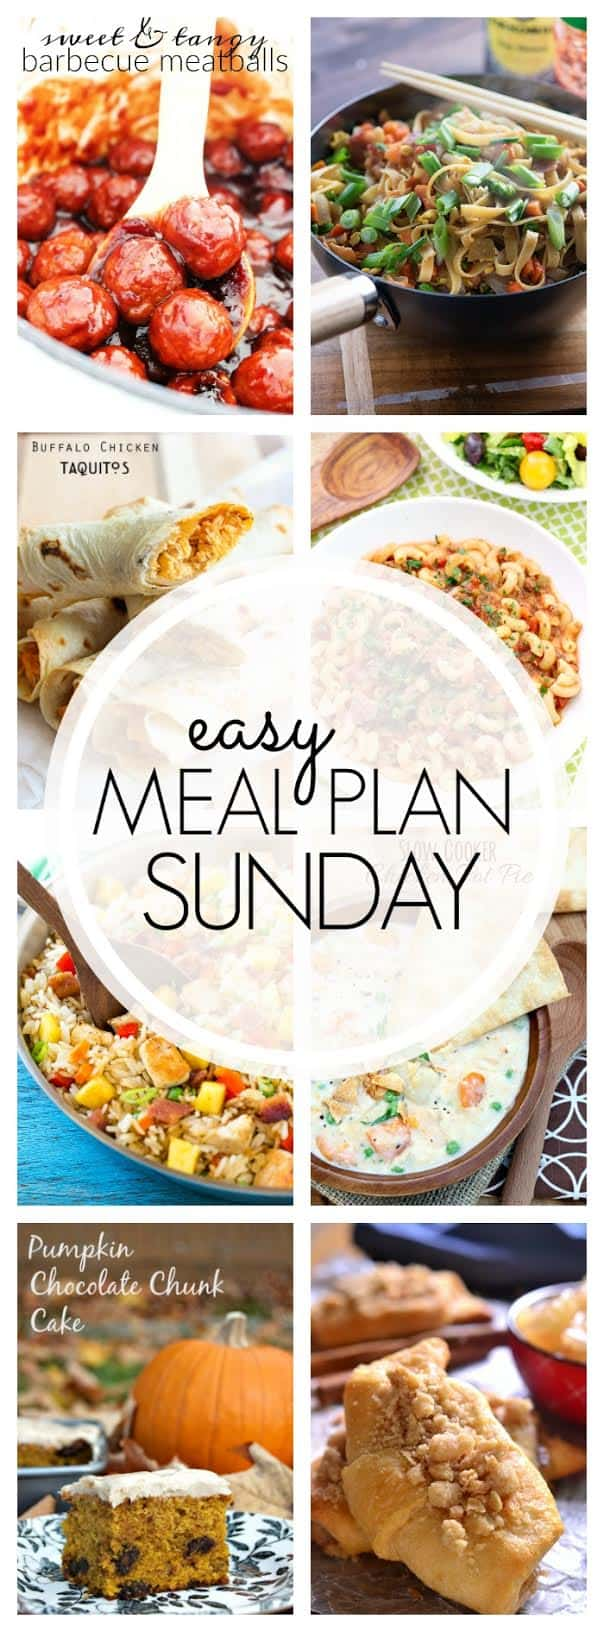 The BEST Easy Meal Plan! 6 dinners, 1 breakfast, and 2 desserts...all delicious and guaranteed to make your week delicious!